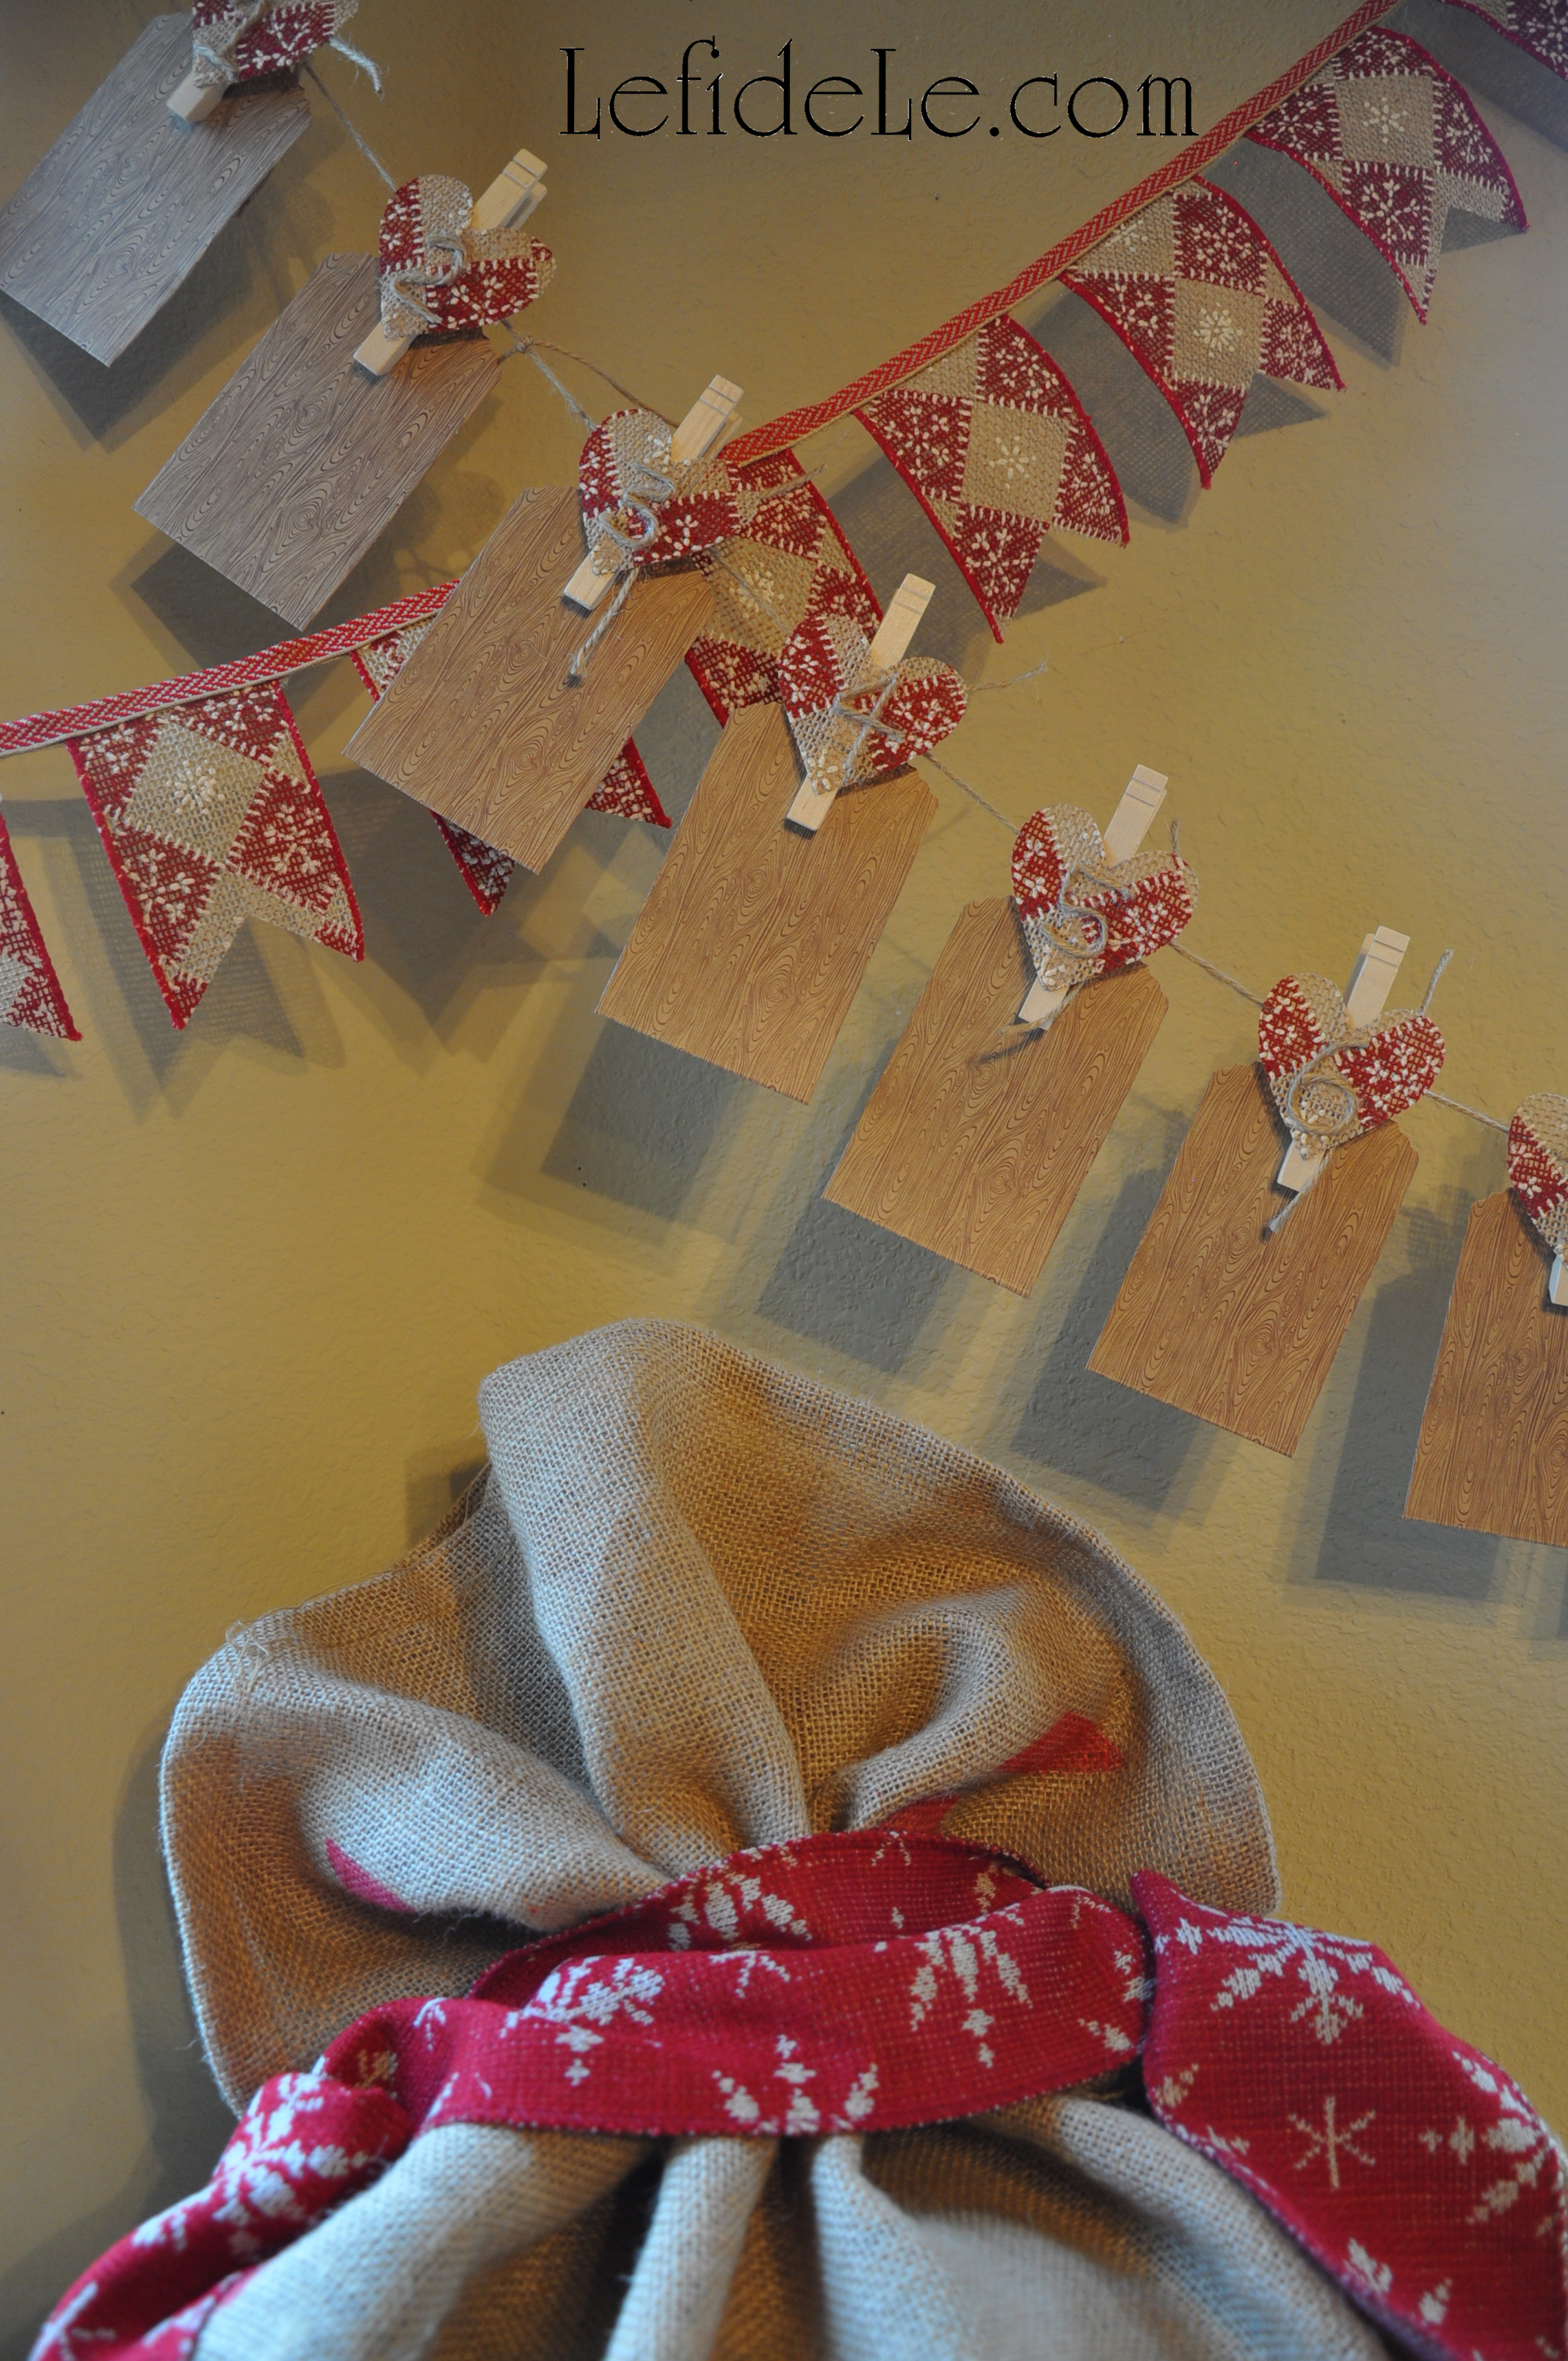 Arts crafts le fidele designs lefidele leigh to make a simple yet adorable christmas banner use a wired ribbon like patterned burlap and a thinner flat woven ribbon cut the woven ribbon as long as solutioingenieria Images